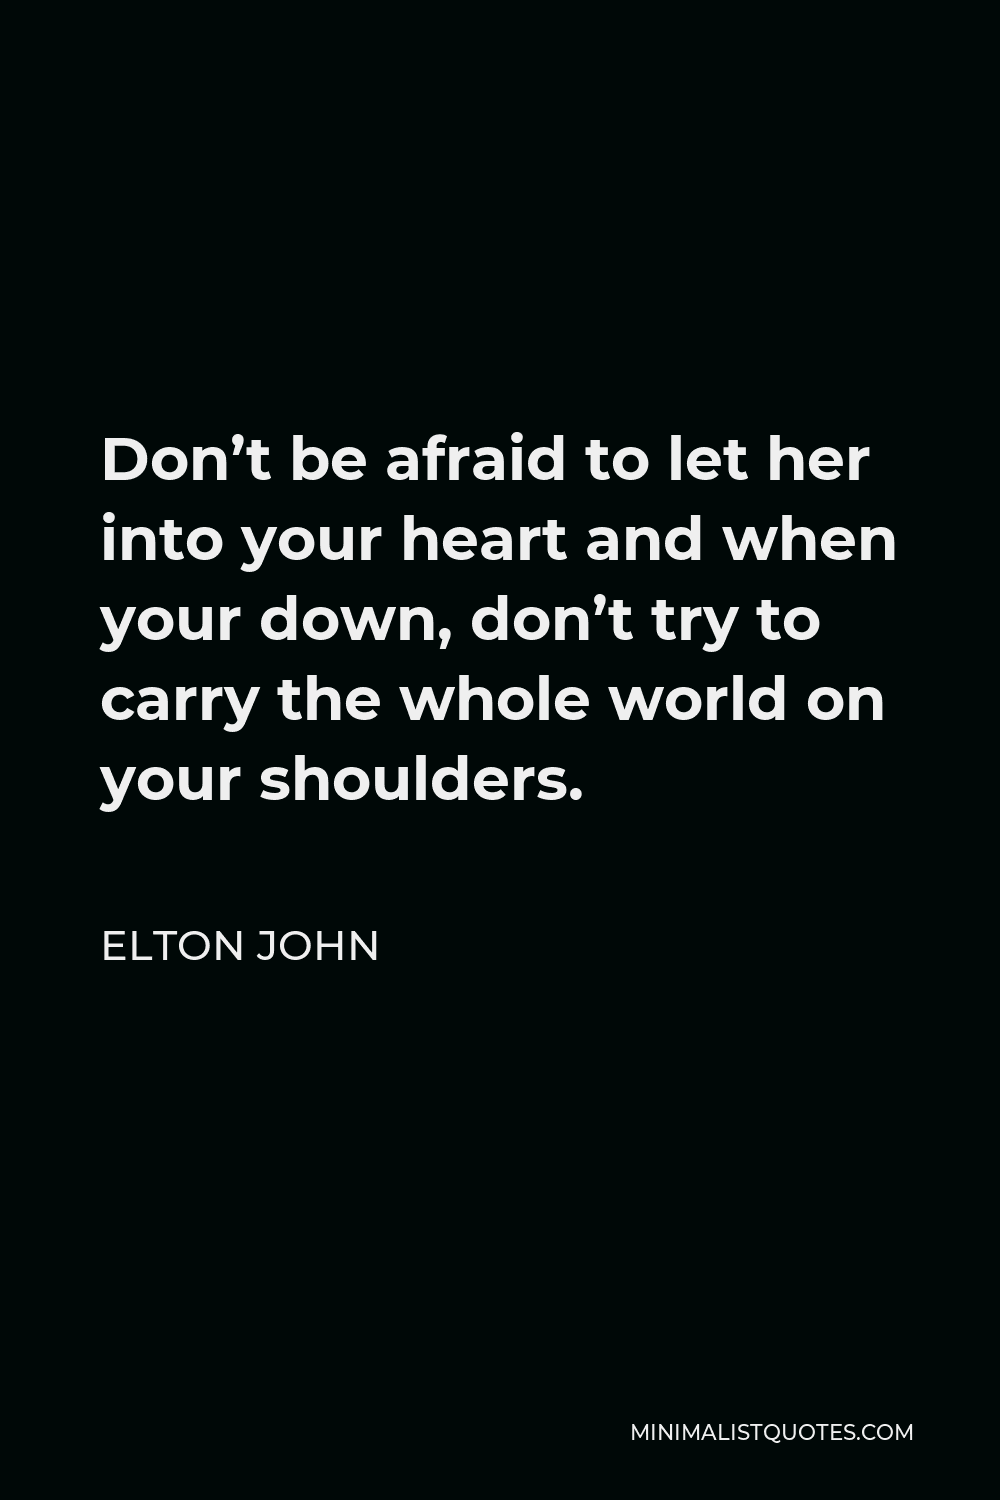 Elton John Quote - Don't be afraid to let her into your heart and when your down, don't try to carry the whole world on your shoulders.